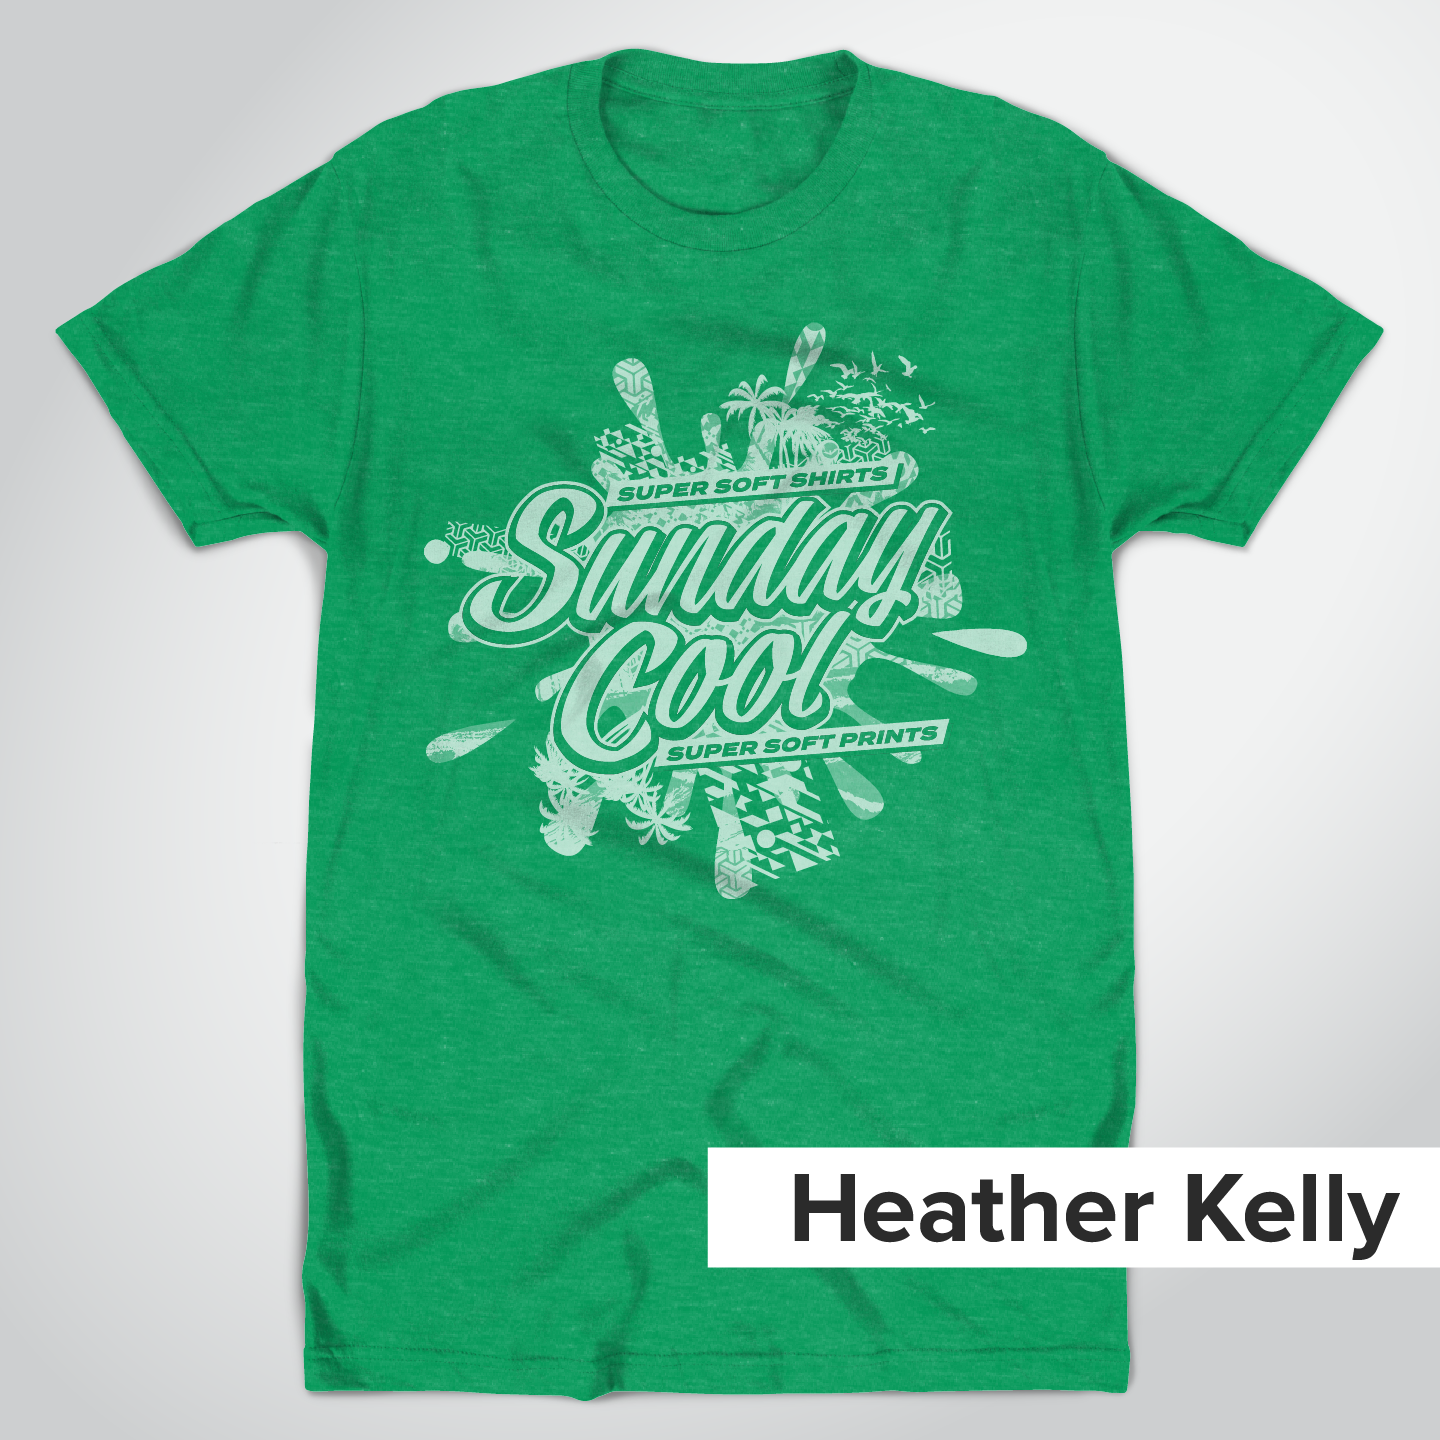 Super Soft Heather Kelly